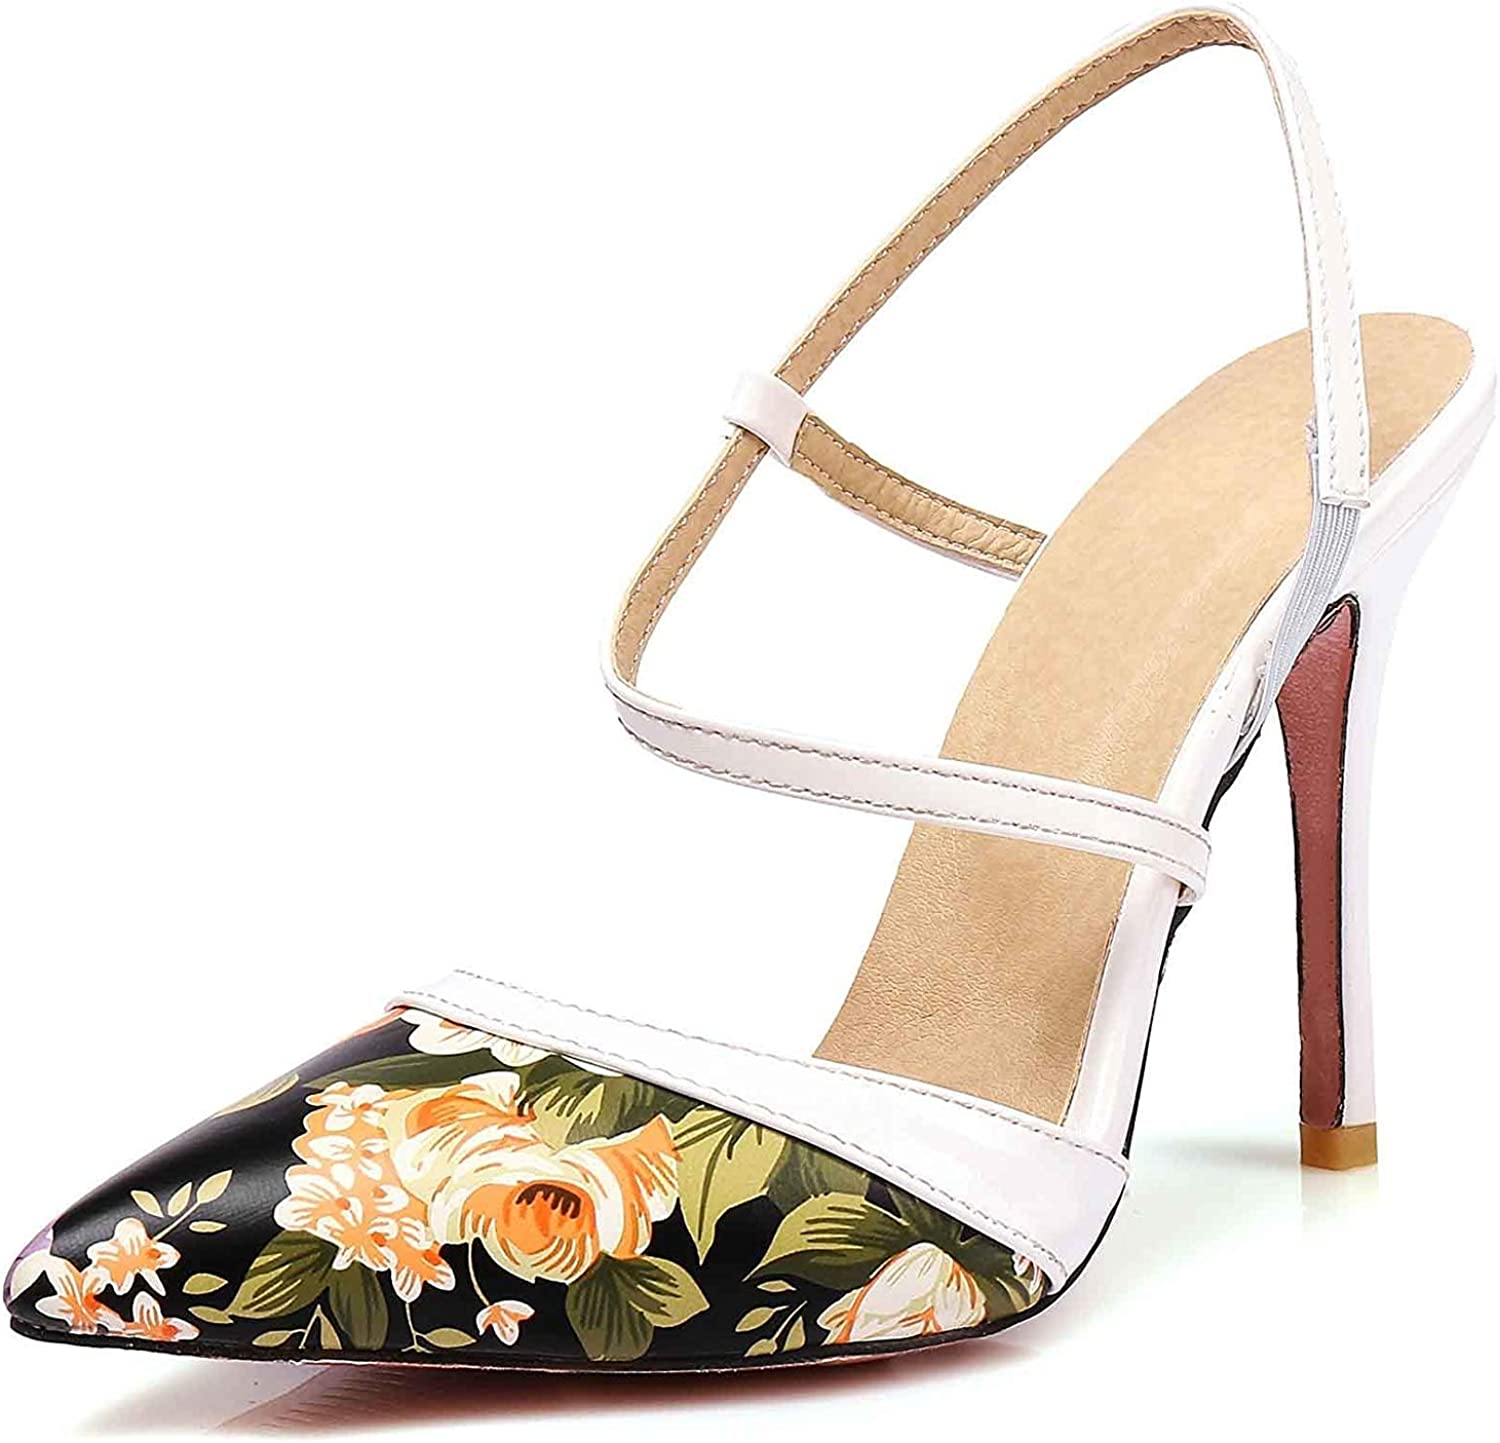 Unm Women's Pointed Toe Sandals with Ankle Strap - Stiletto High Heels - Flower D'-Orsay